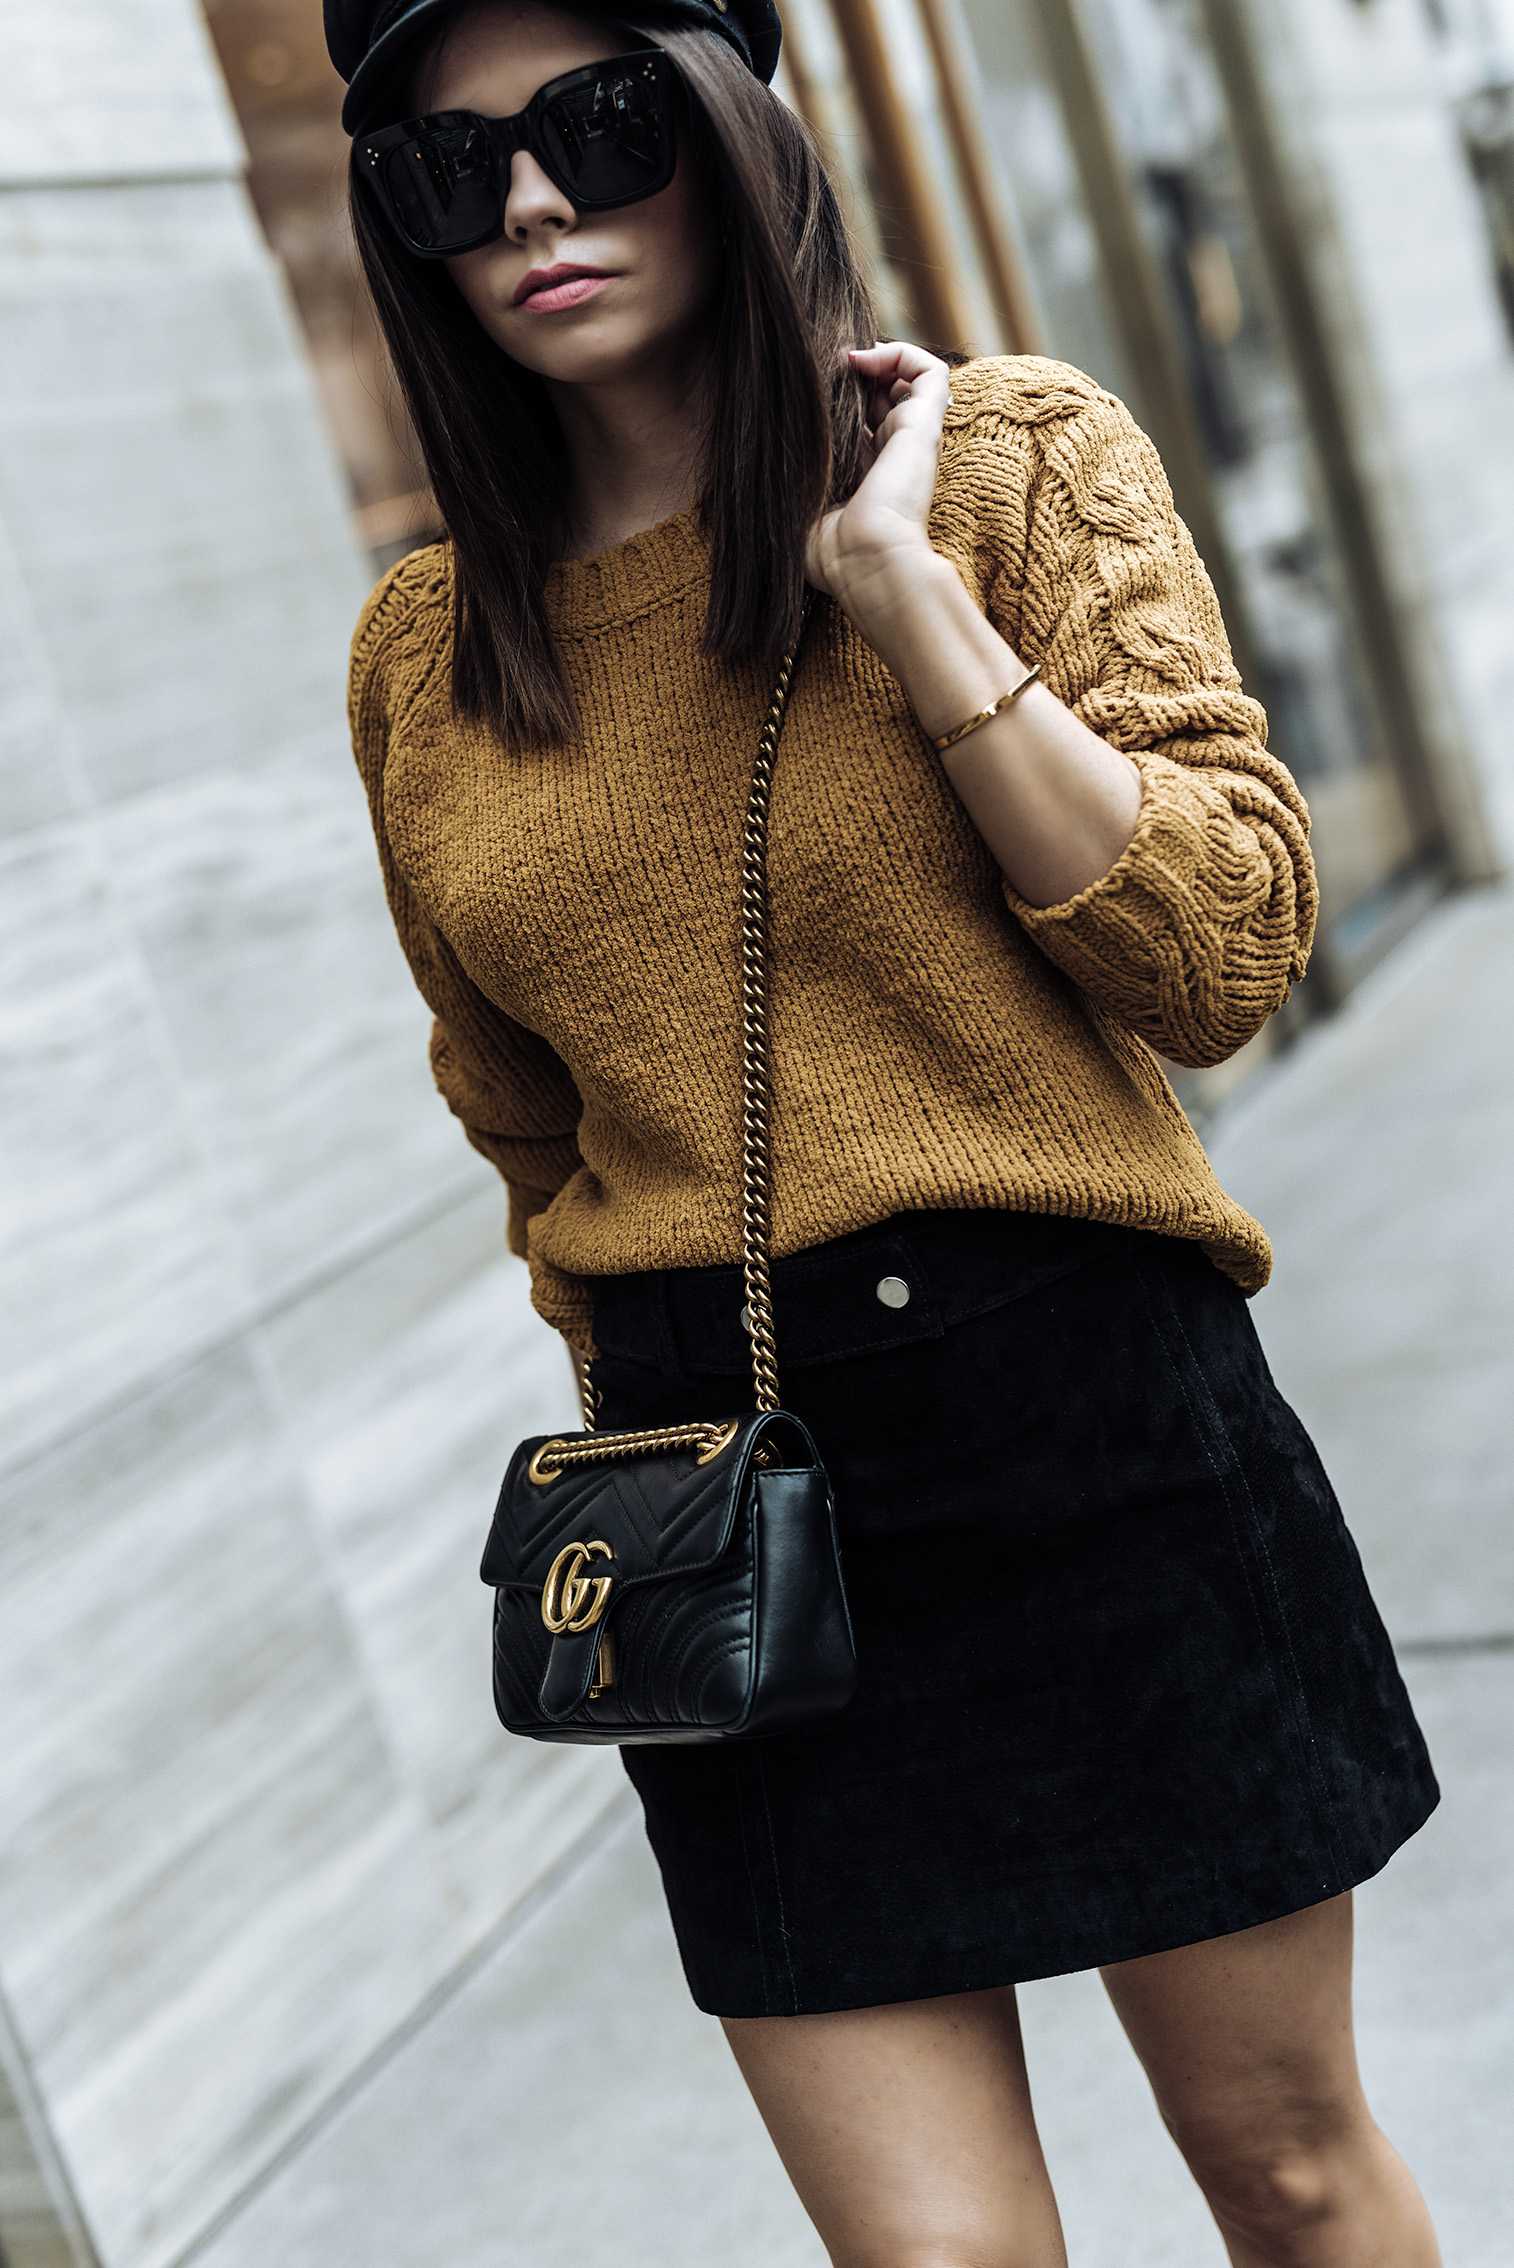 | Fall uniform |ASOS only cable knit sweater | ASOS Ellison zip booties | Suede mini skirt (ZARA, similar here) | Streetstyle blog | Paperboy hat | #falloutfits2017 #paperboyhat #sweateroutfits #streetstyle